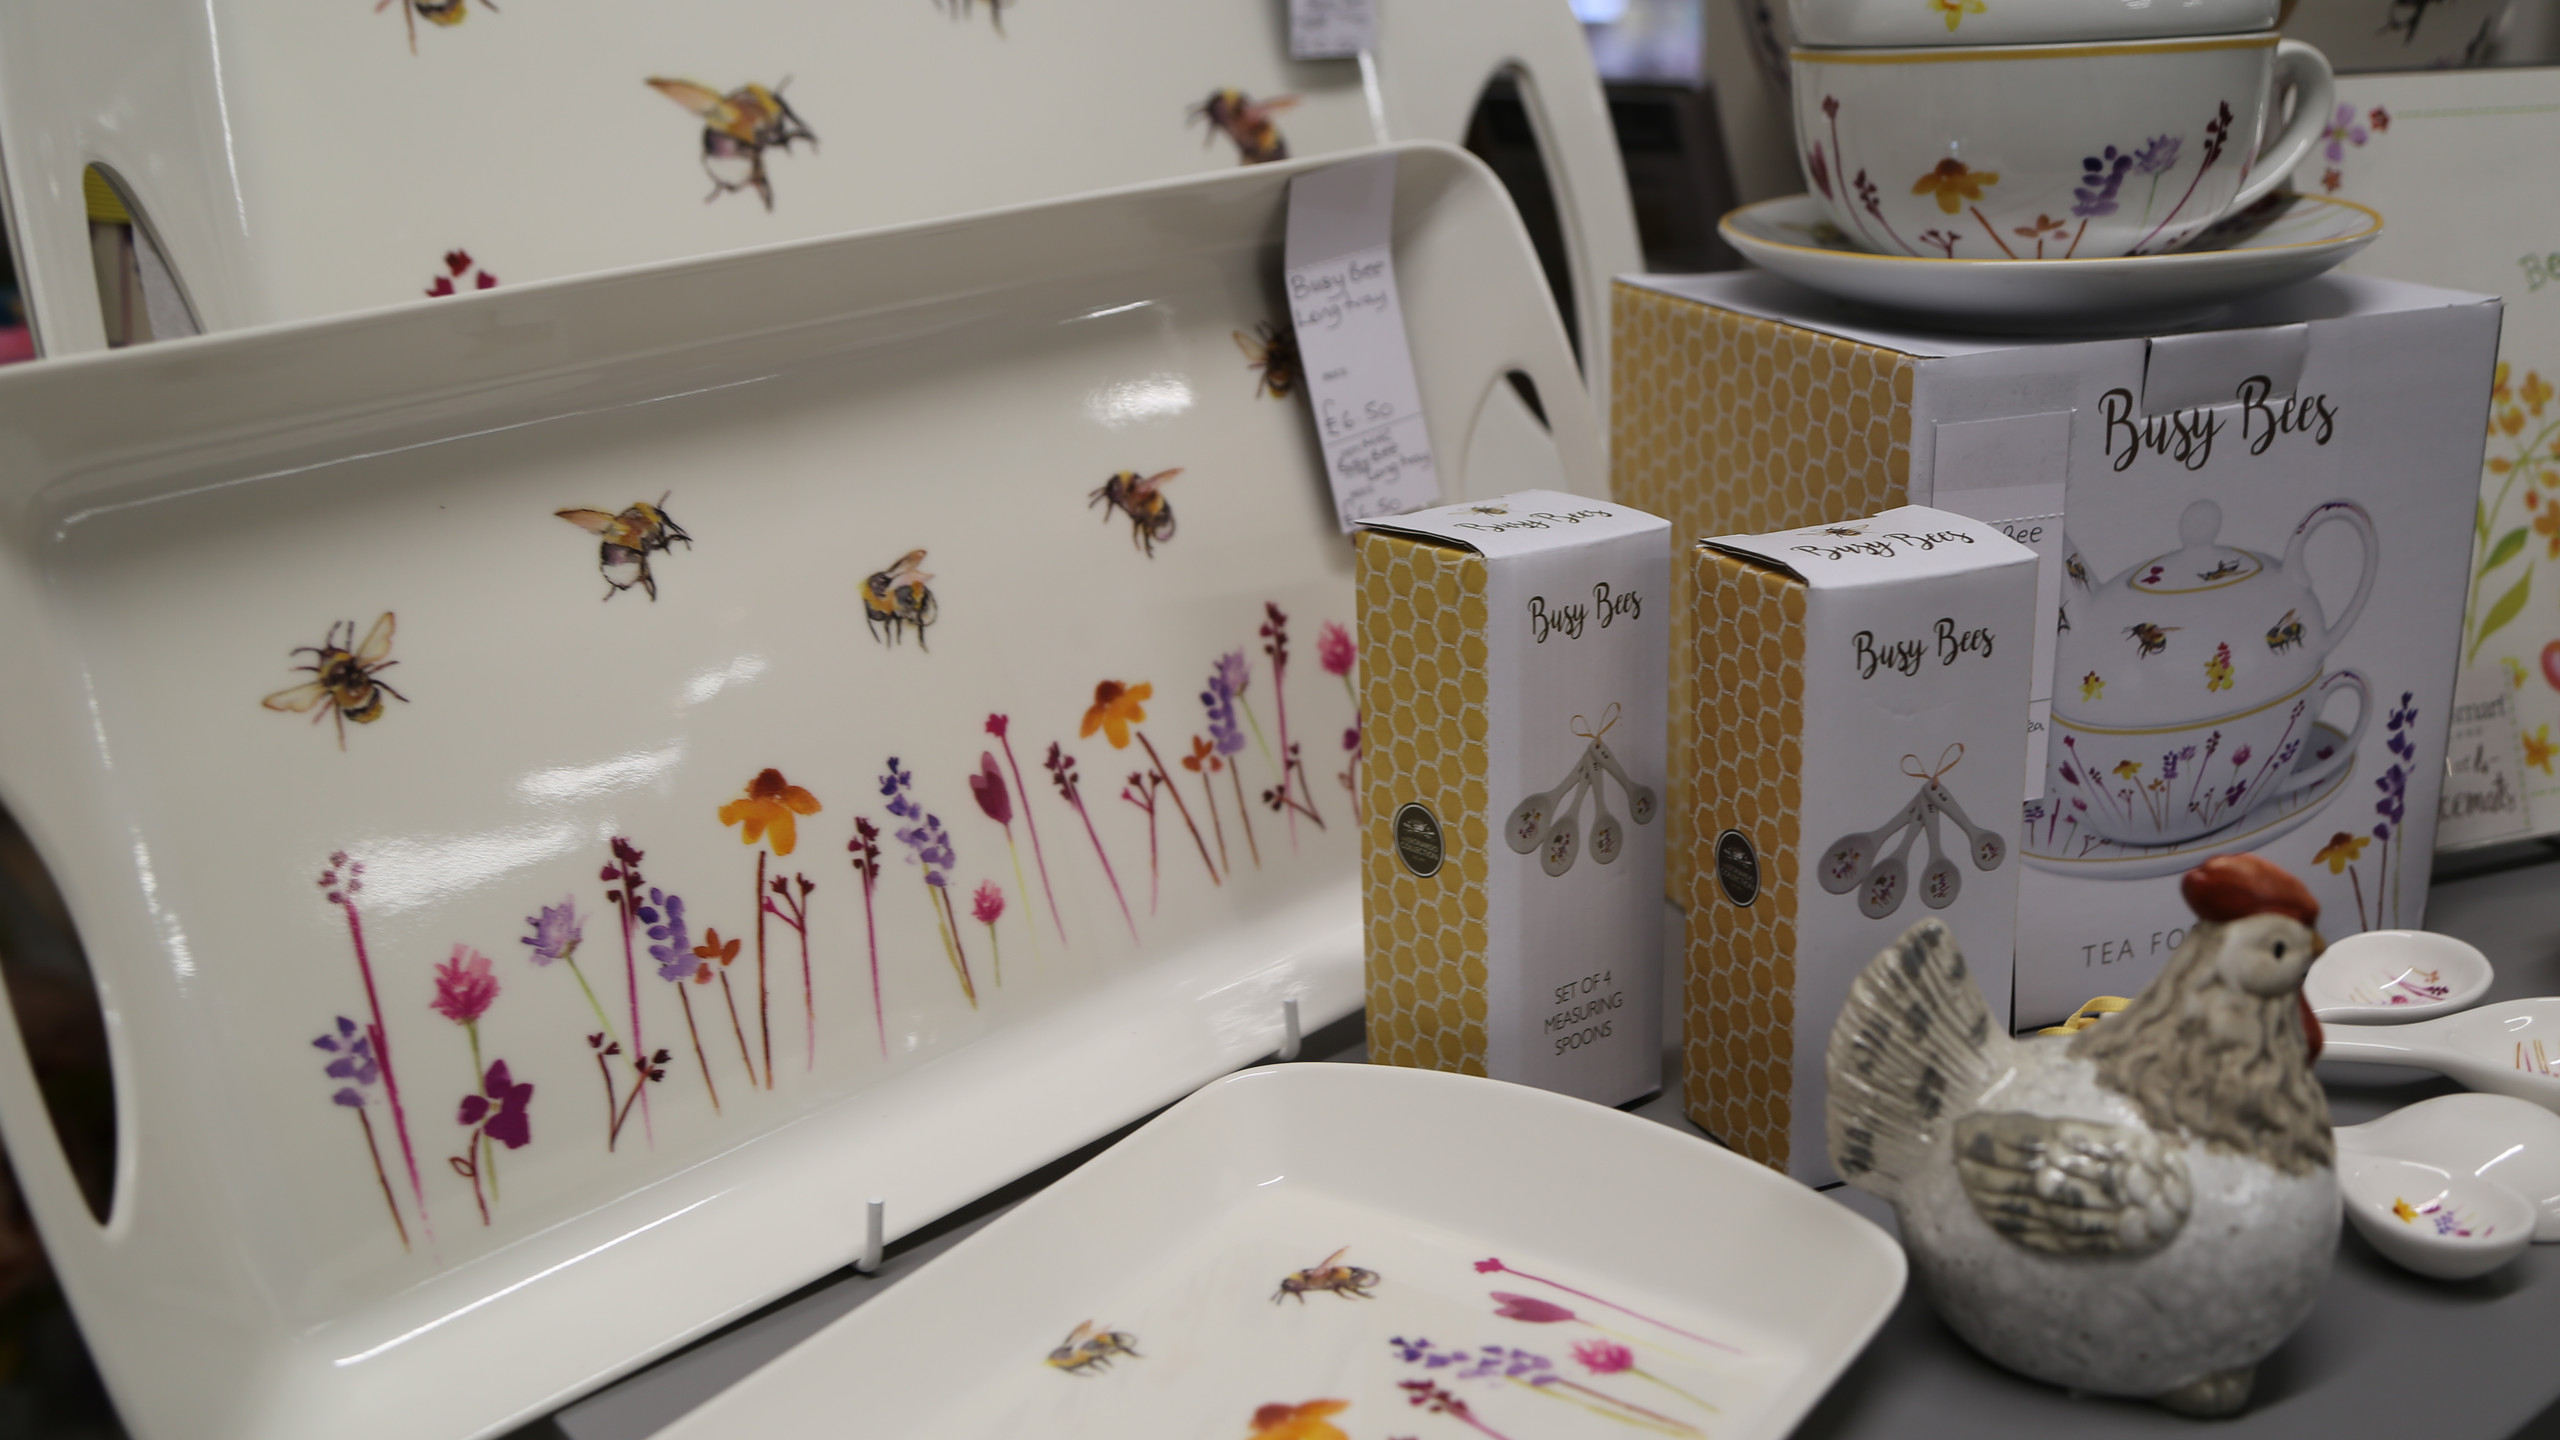 A selection from Busy Bees